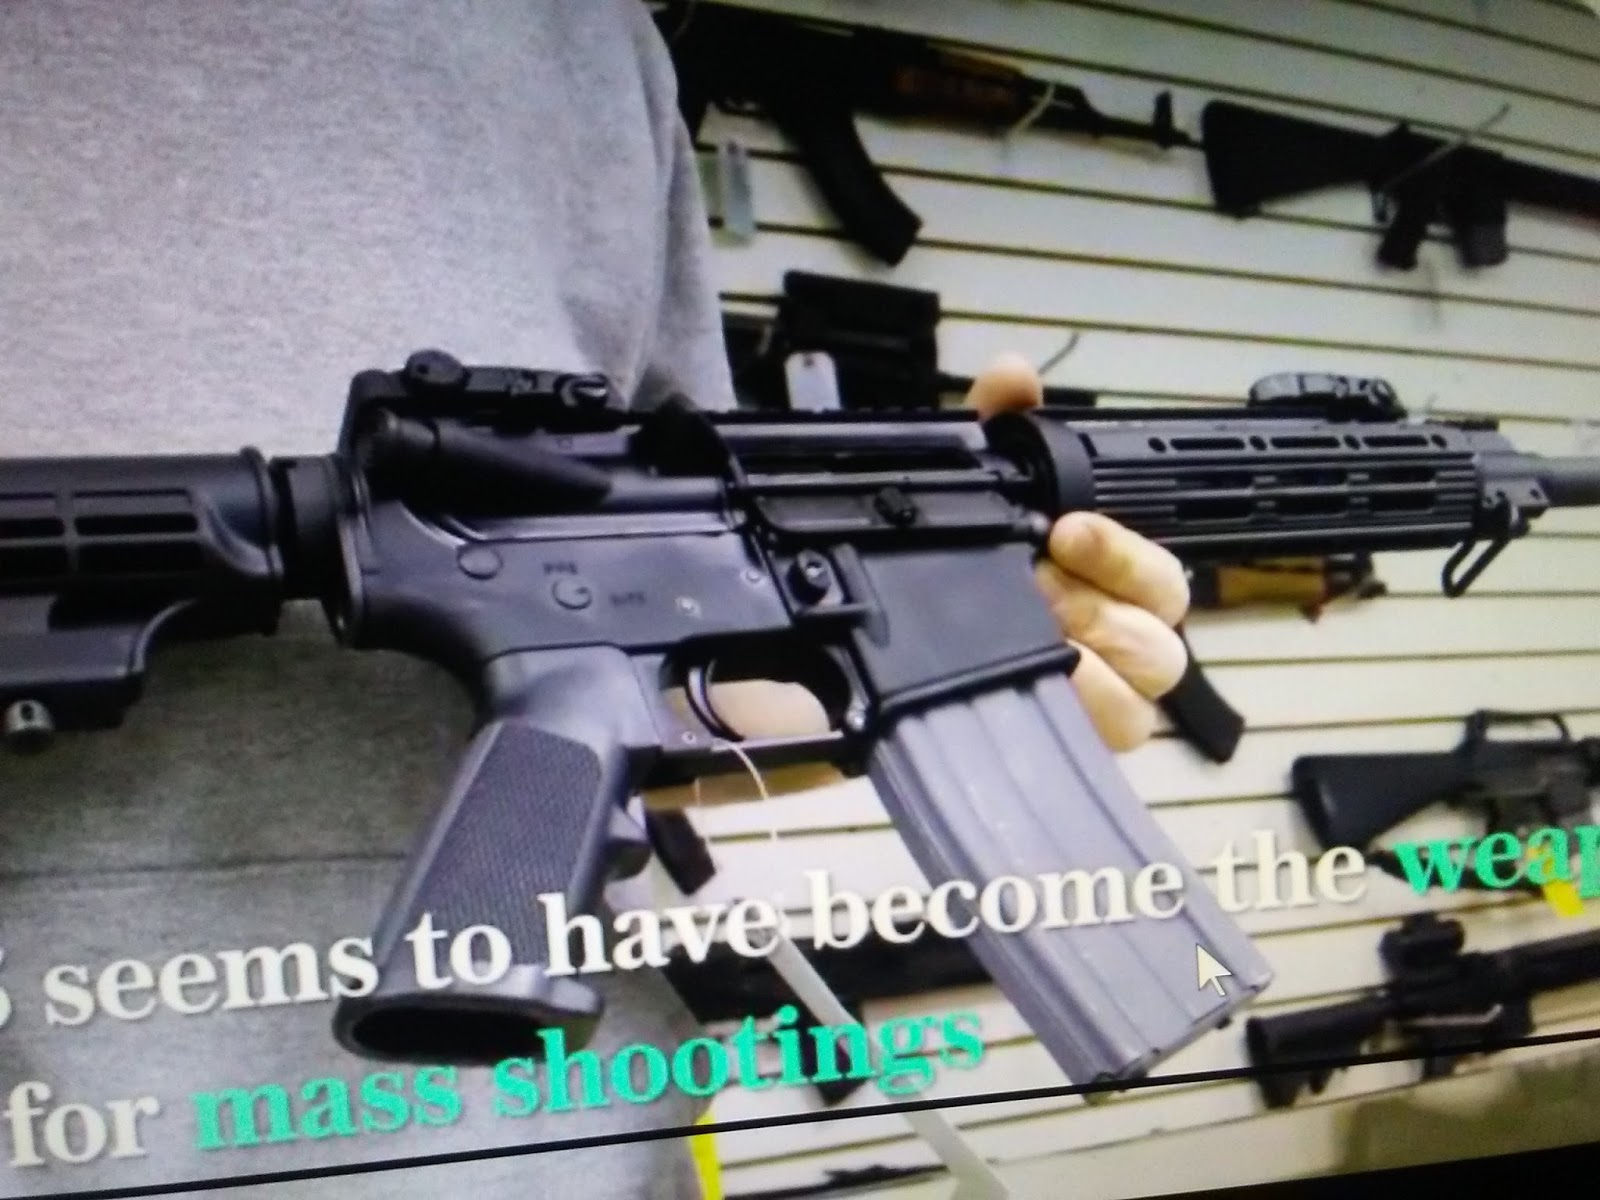 The Last Tradition: Florida lawmakers reject assault weapons